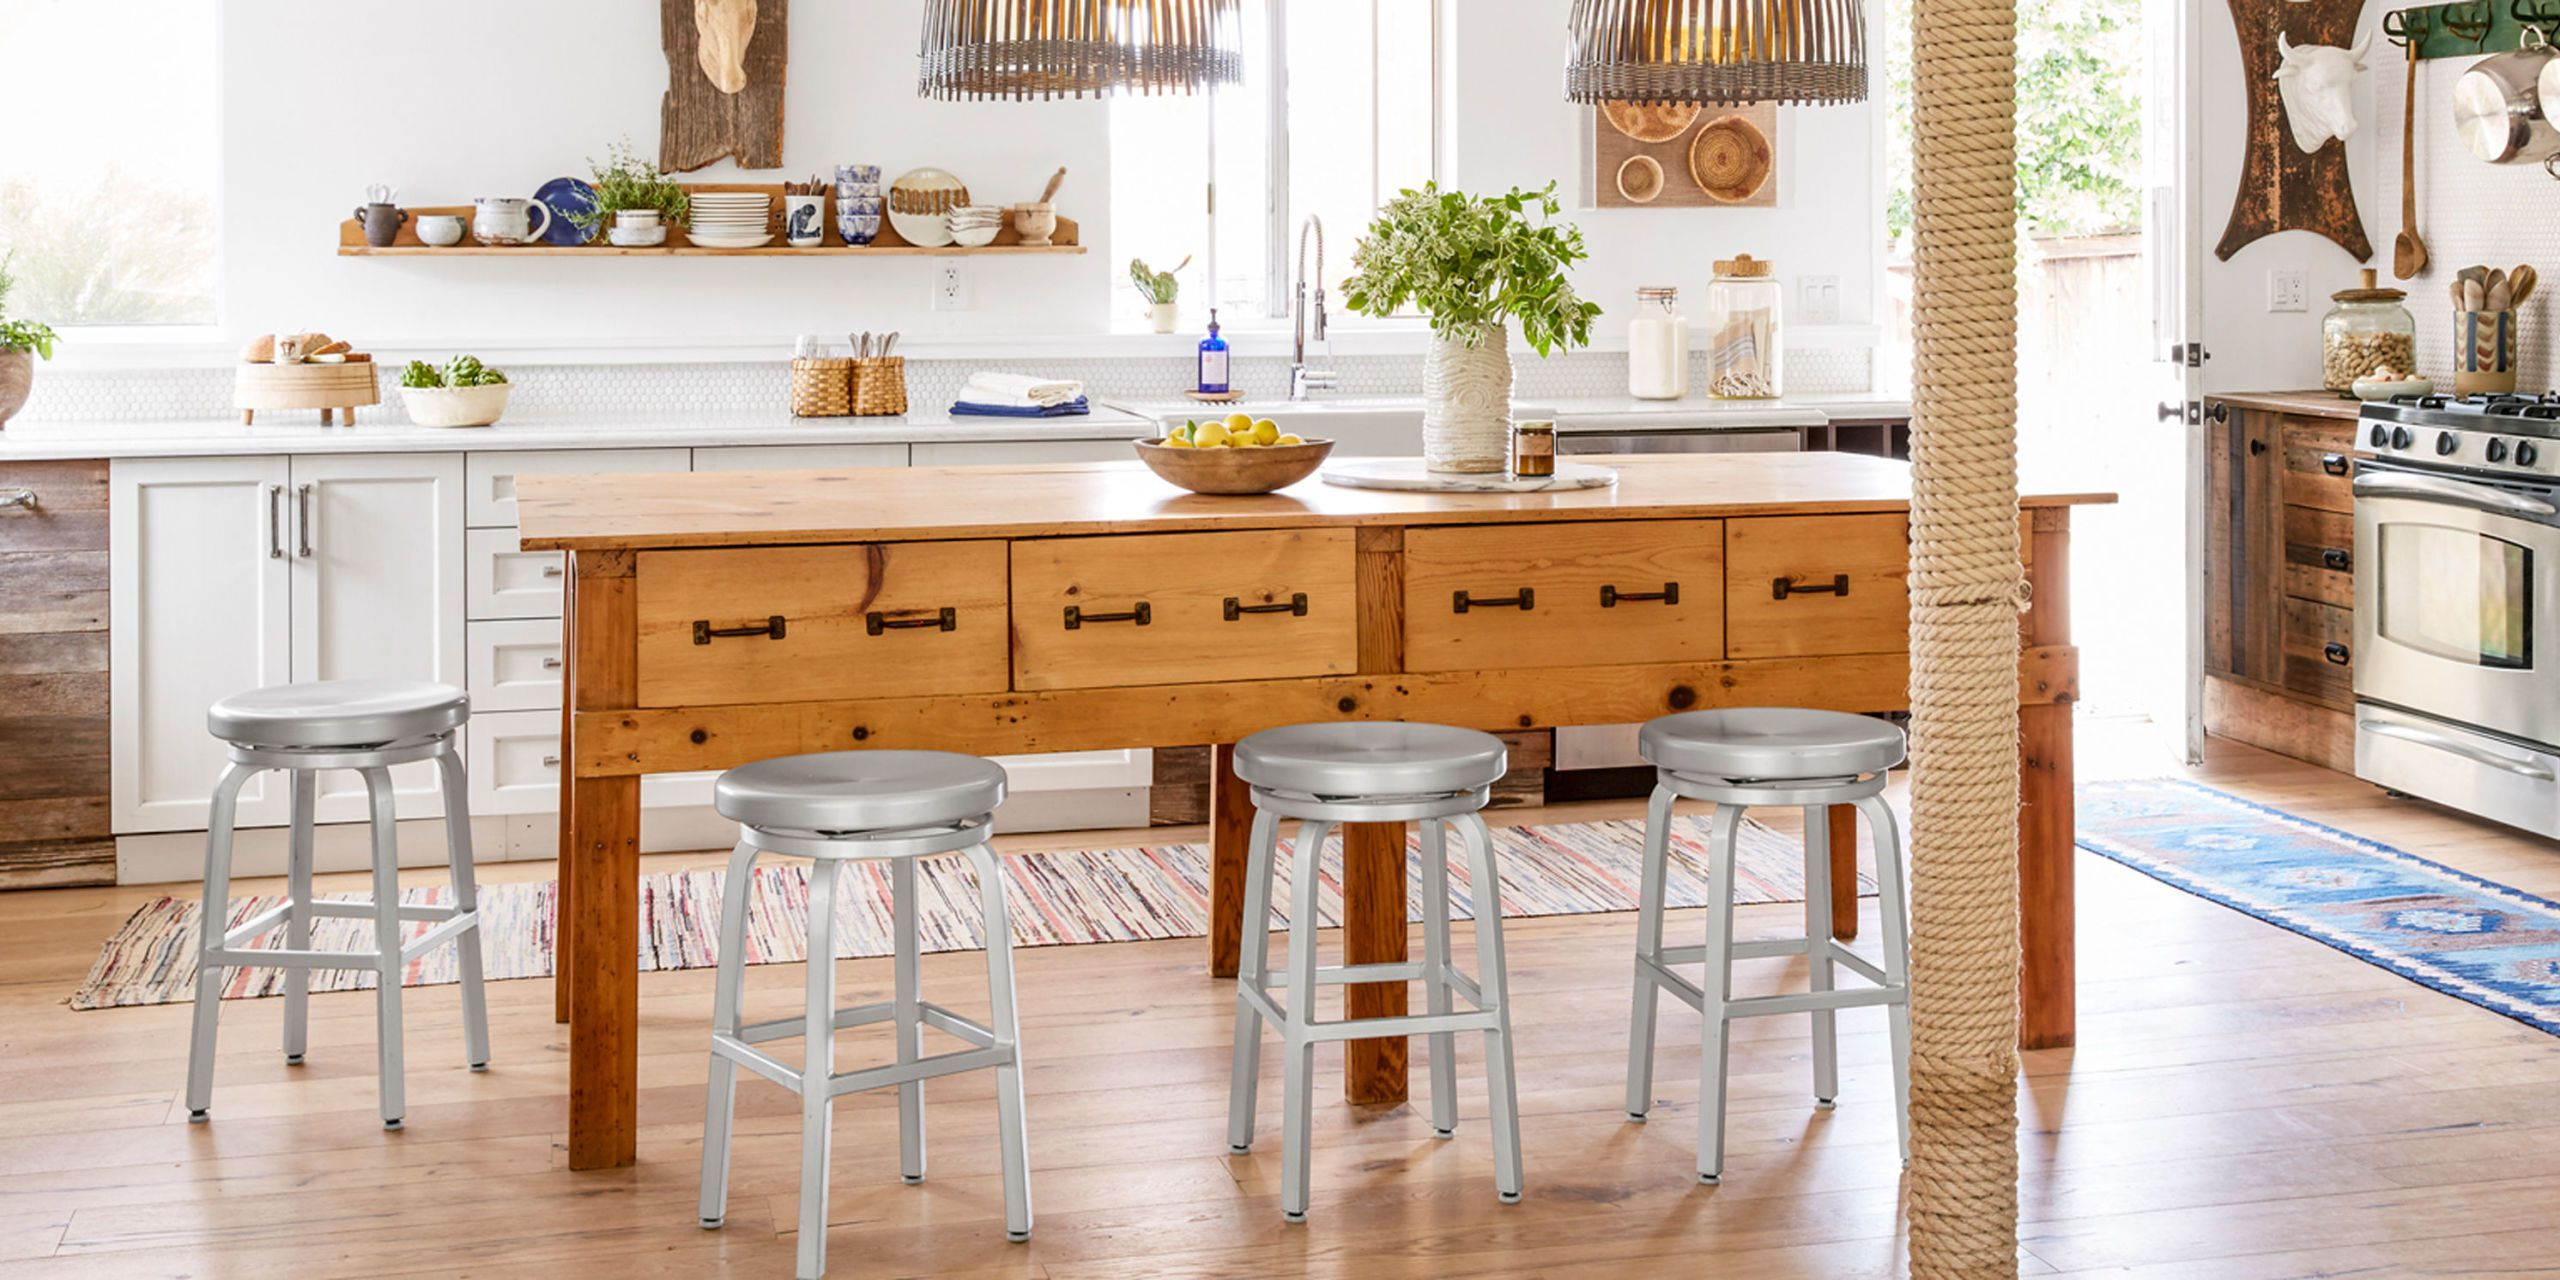 Kitchen Islands add storage, style, and extra seating with a standalone kitchen island. OEUTOUT